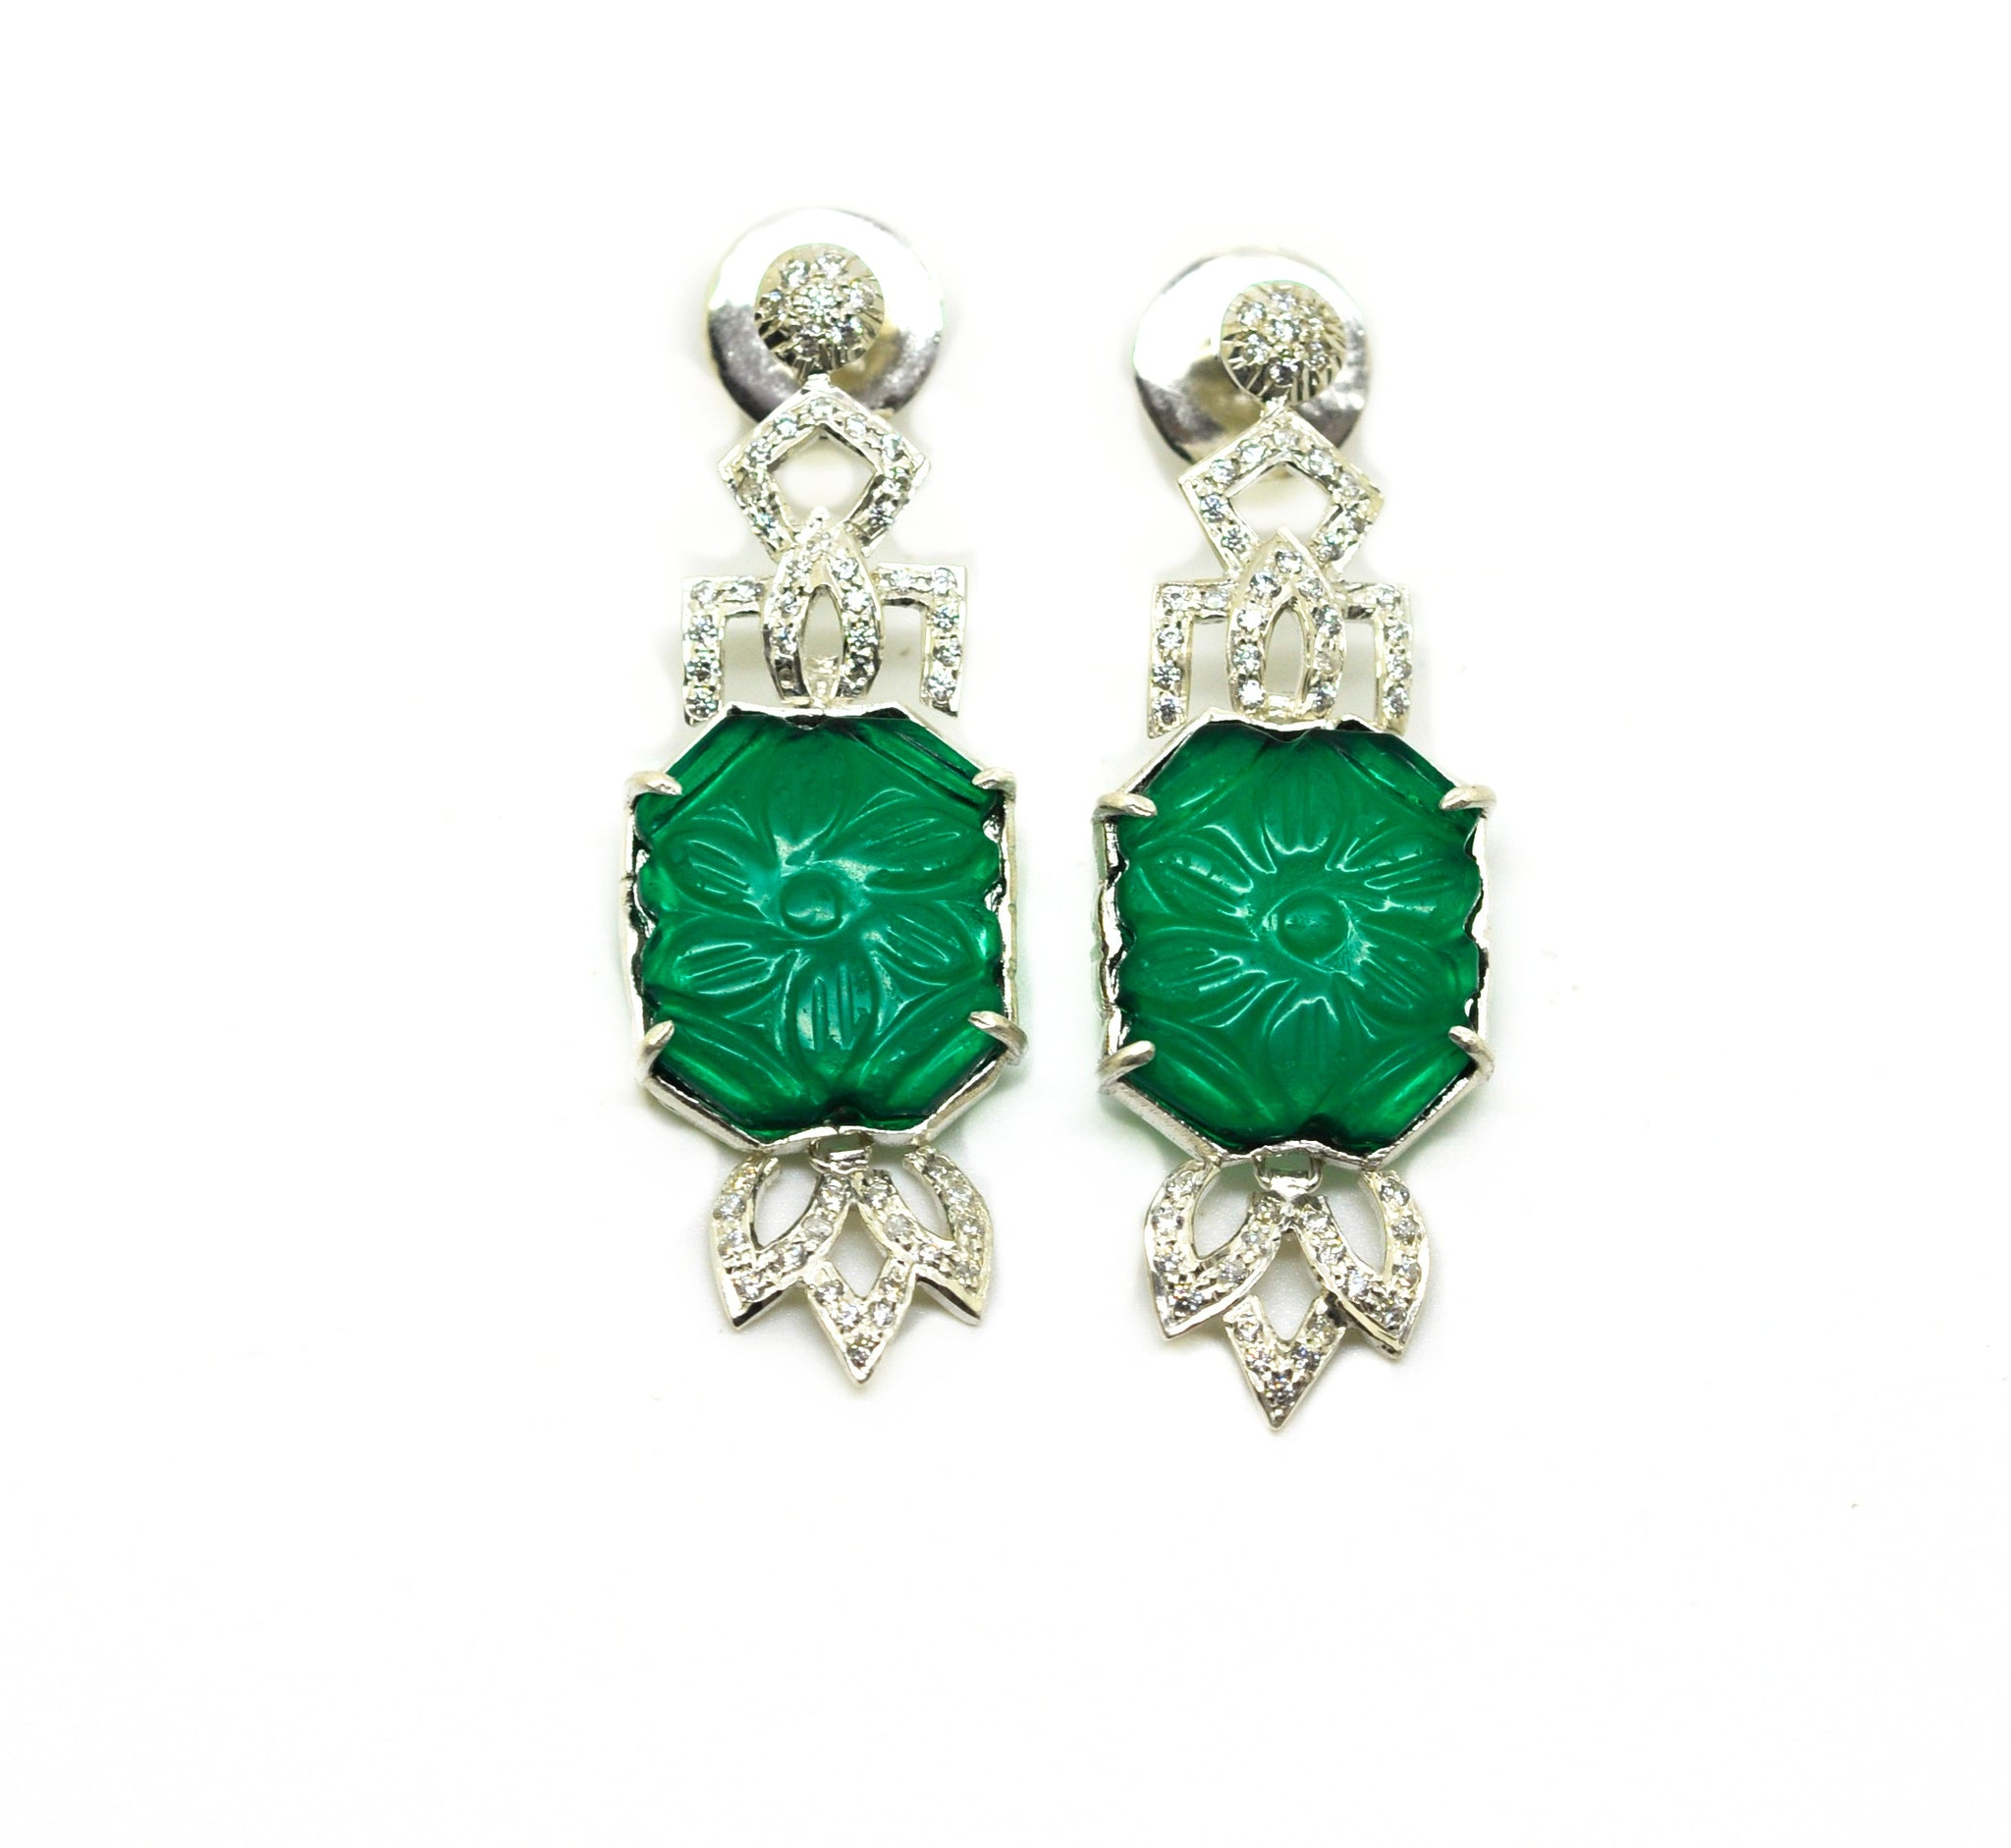 SOLD - 20 in 2020 AD Green quartz earring